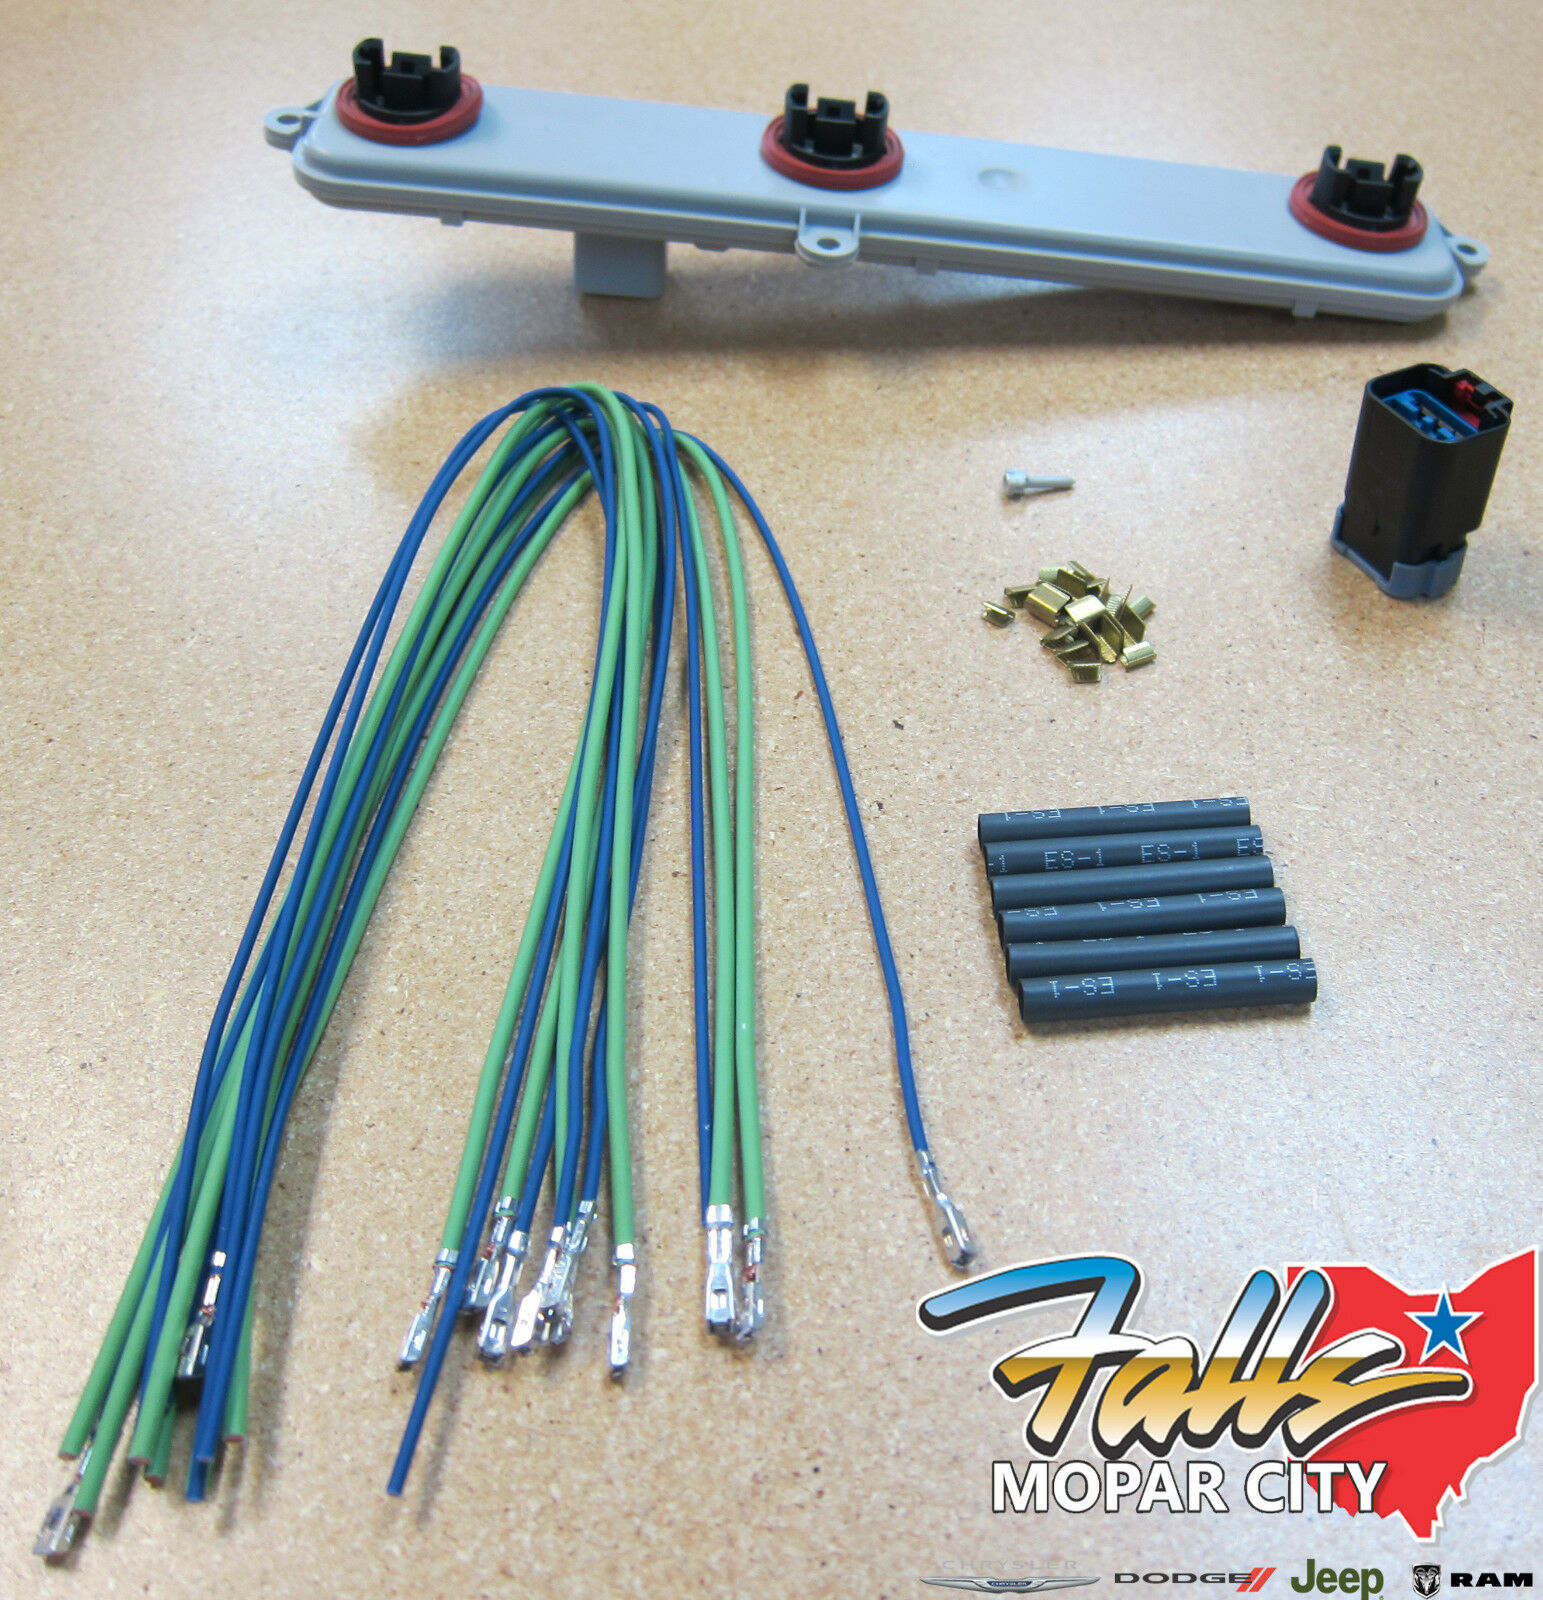 2005 Dodge Ram Tail Light Wiring Harness - Wiring Diagram •